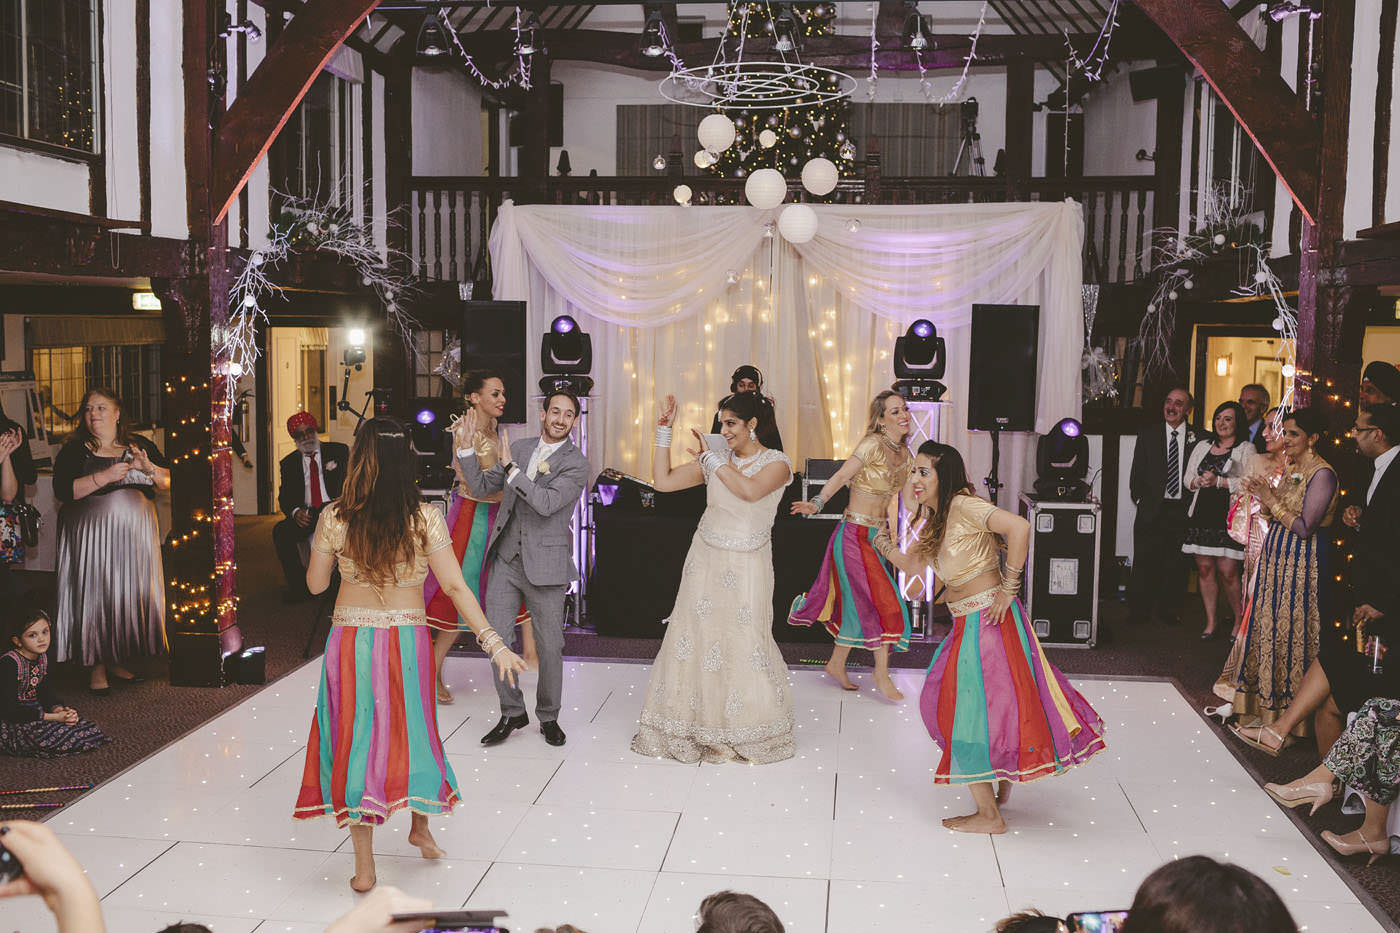 edmundjasveen burford bridge hotel wedding photographer 0125